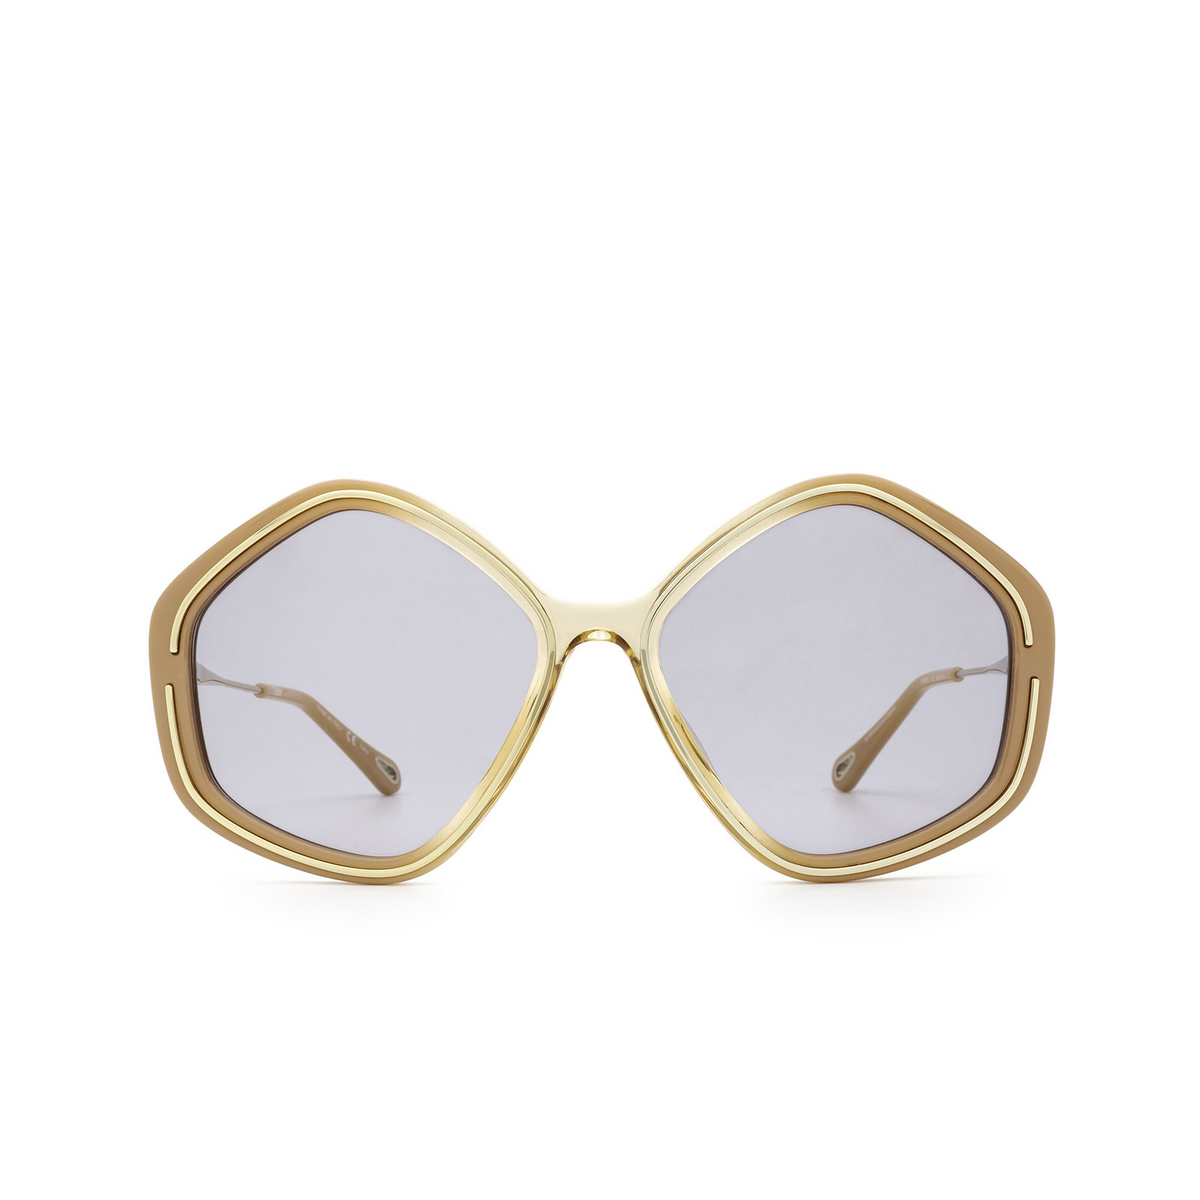 Chloé® Irregular Sunglasses: CH0061S color Nude 002 - front view.